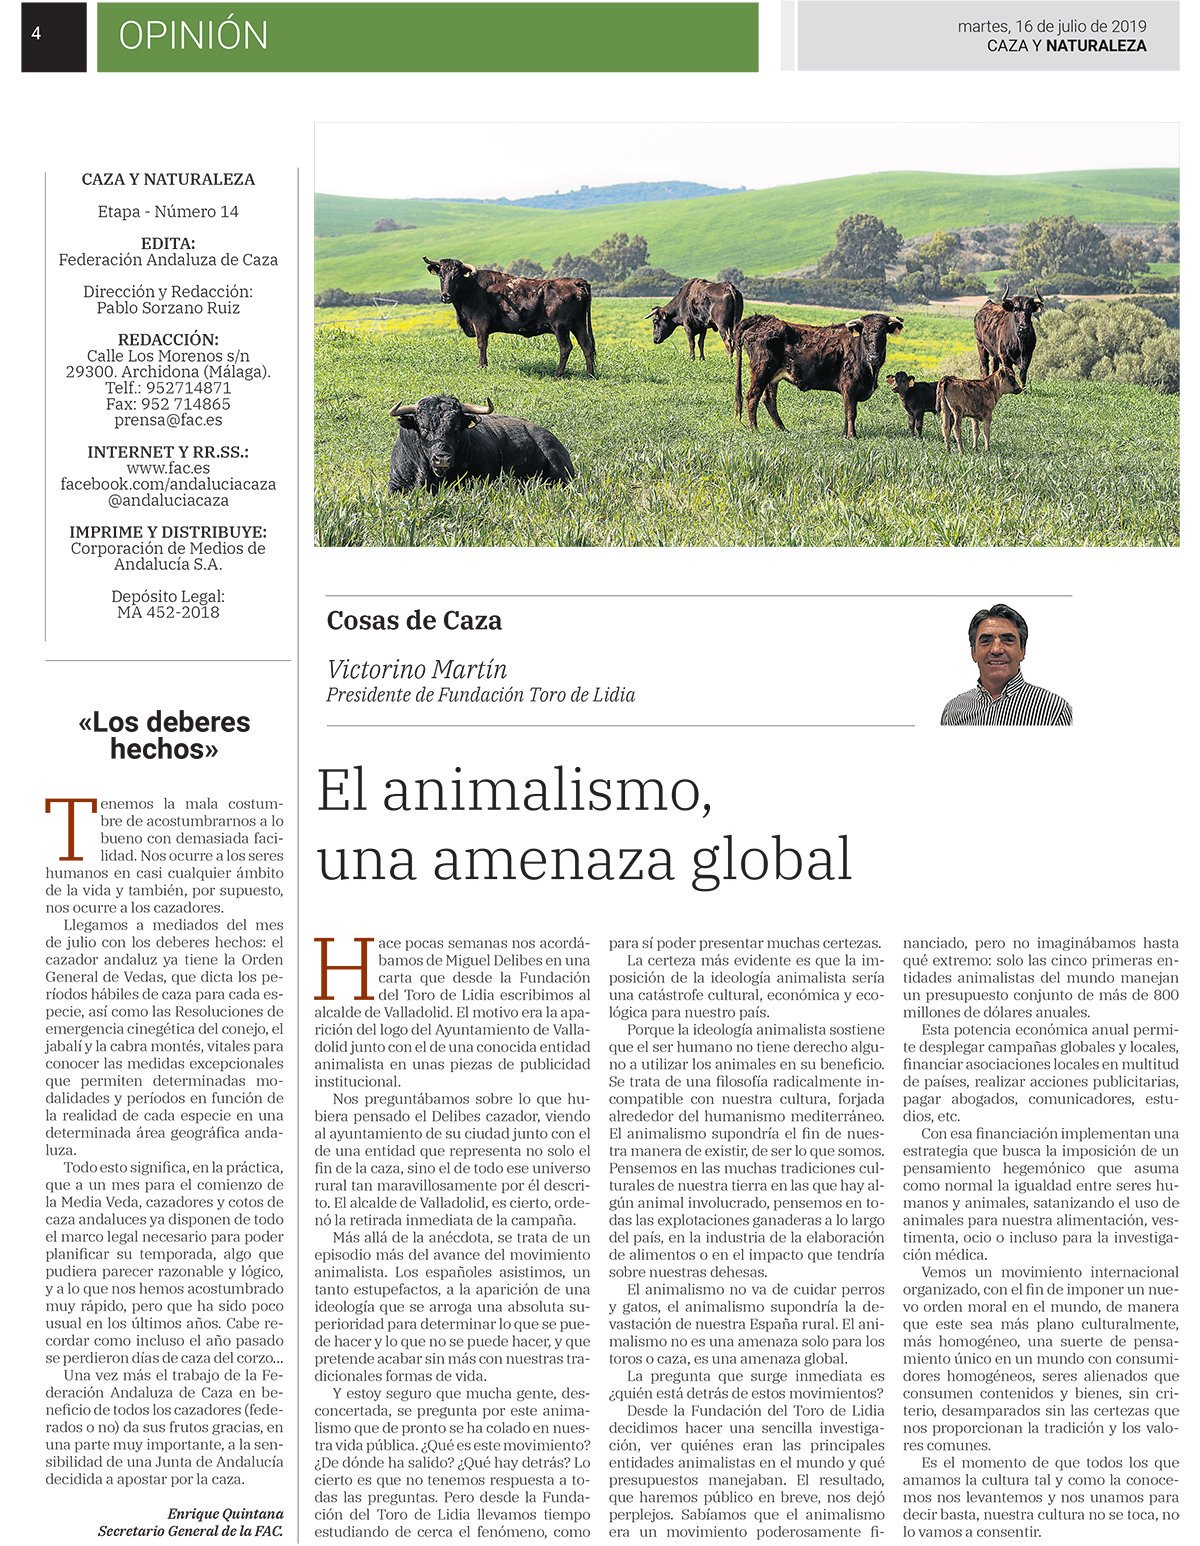 El animalismo, una amenaza global